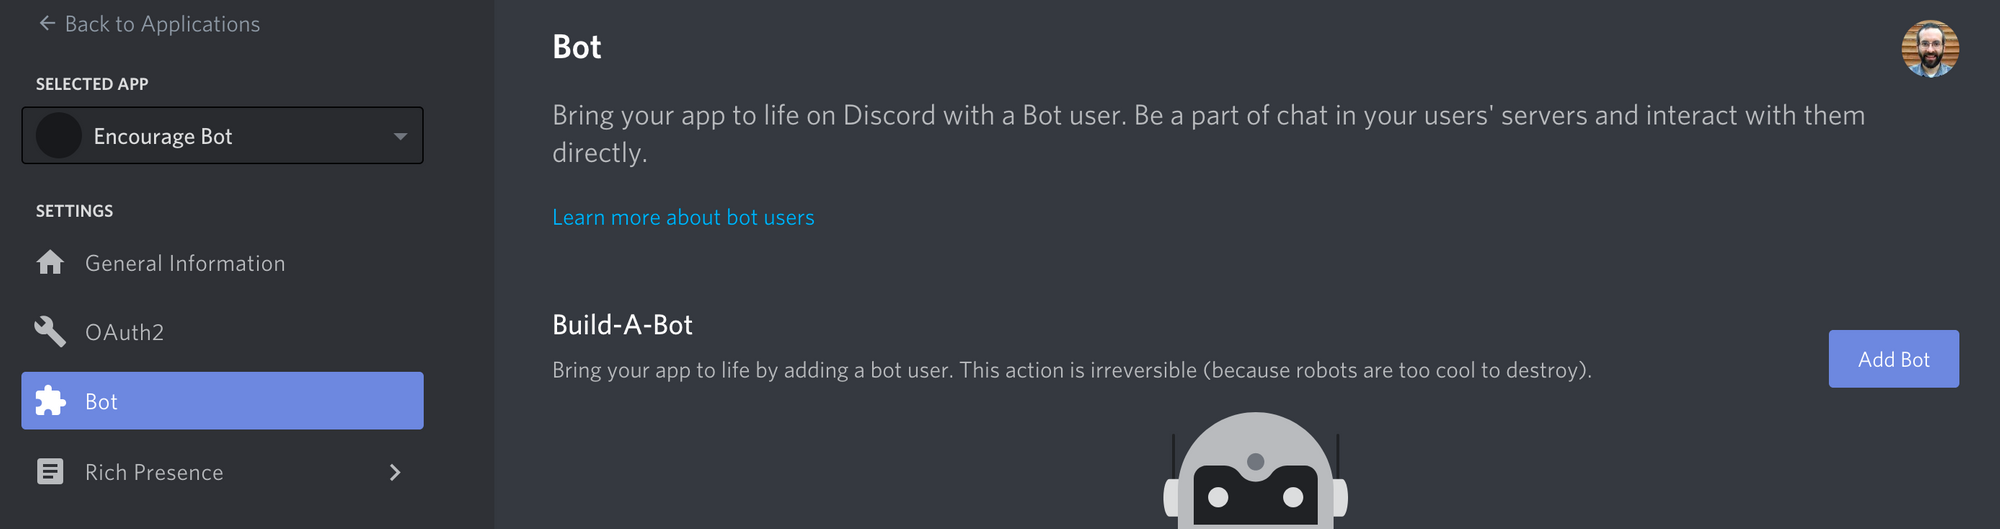 How To Create A Discord Bot For Free With Python Full Tutorial